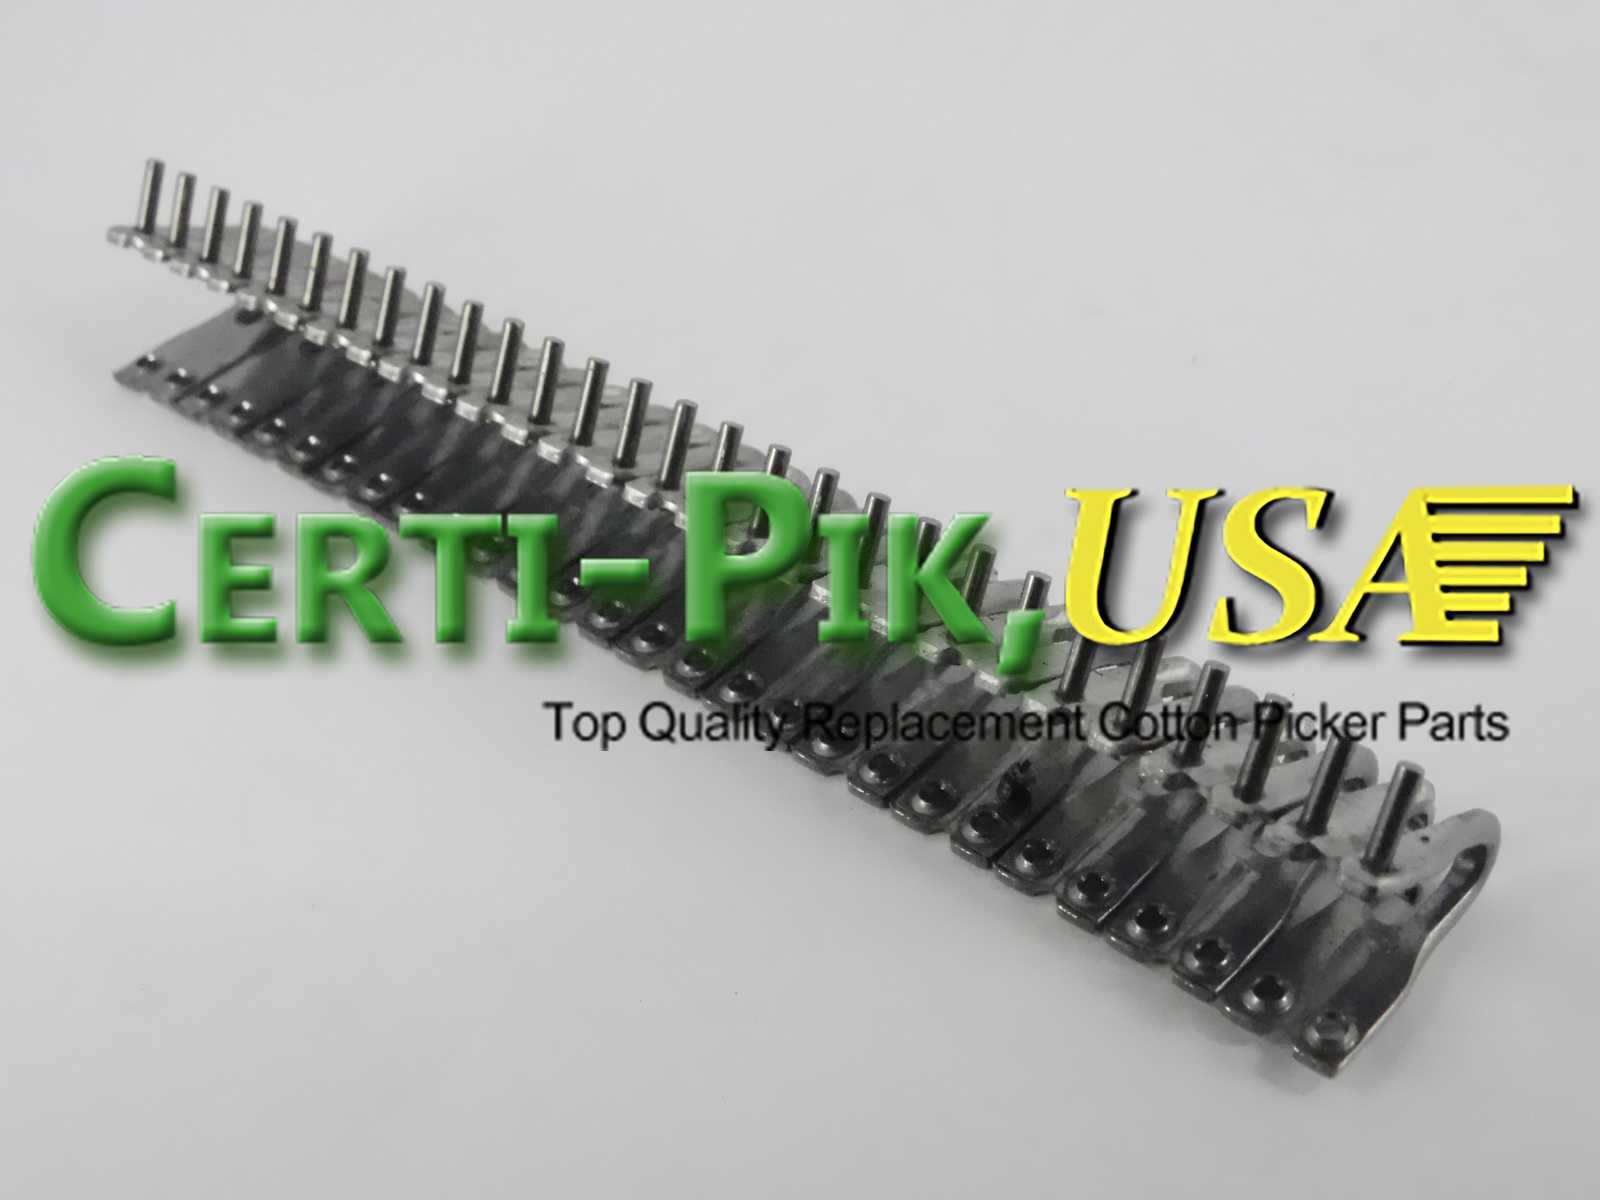 Belts: John Deere Replacement Belts - 9900 Thru CP690 AE53298 (B53298) for Sale